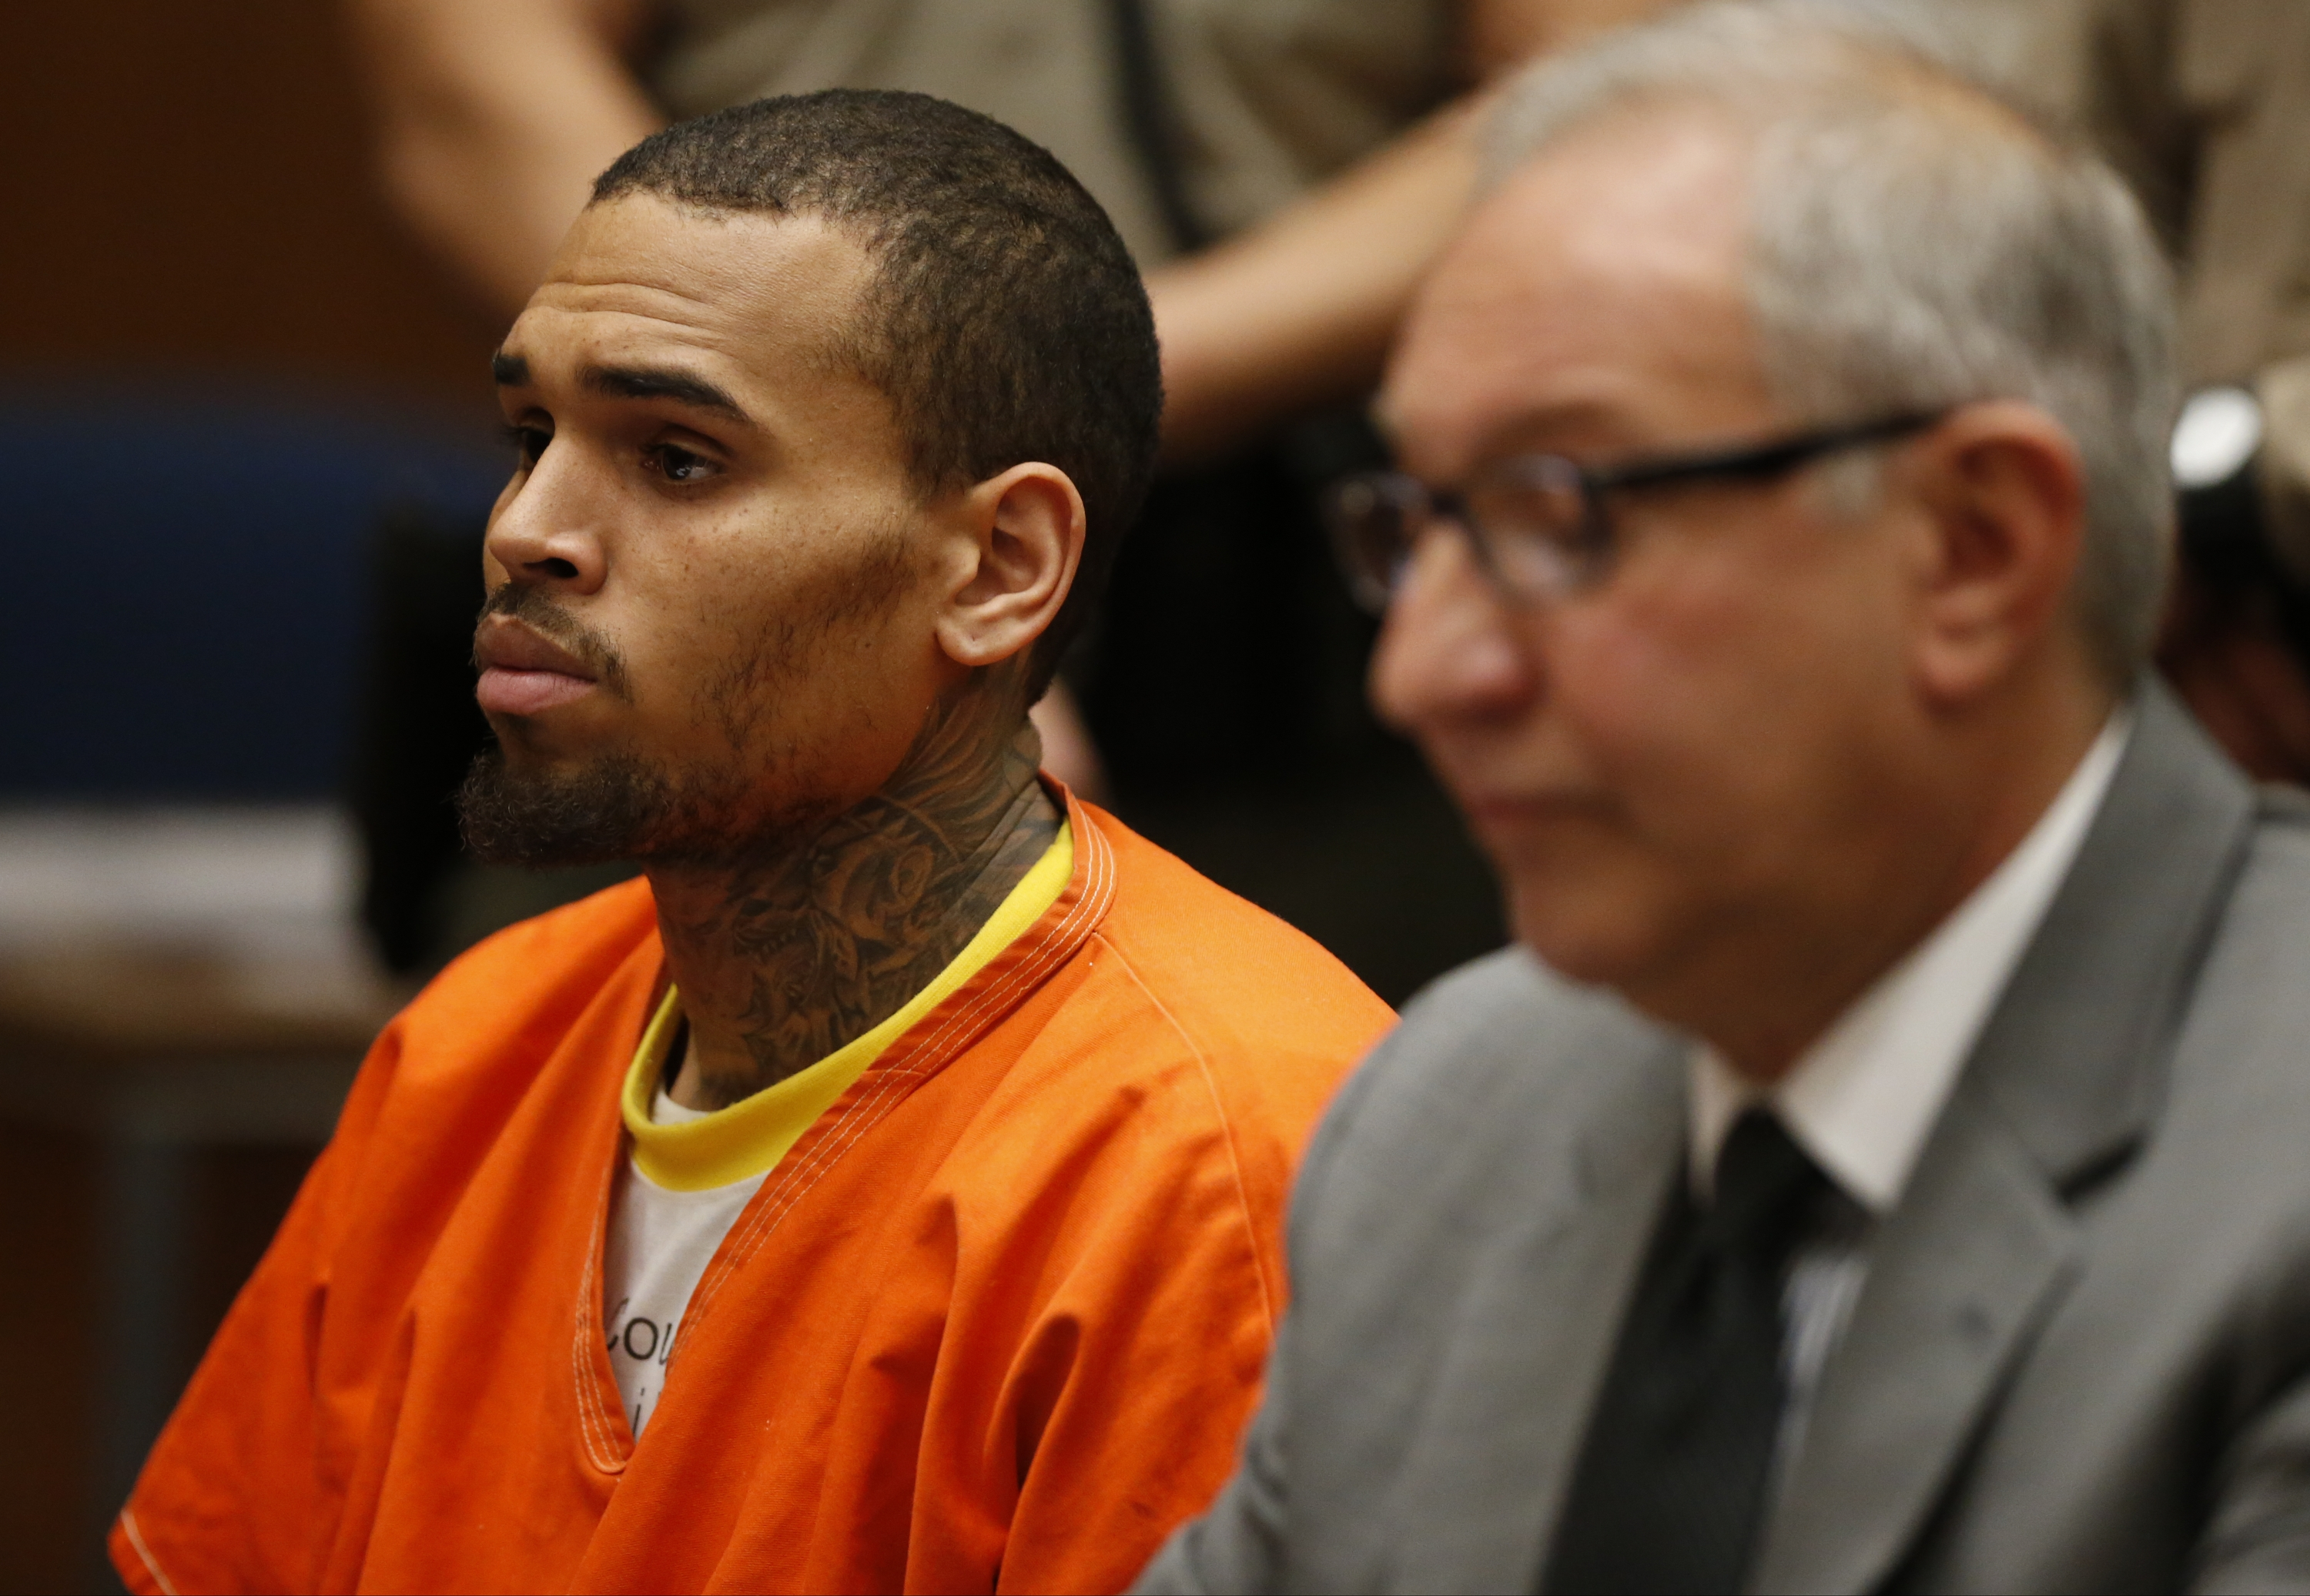 R&B singer Chris Brown, left, appears in Los Angeles Superior Court with his attorney Mark Geragos on Monday and was ordered to remain in jail.